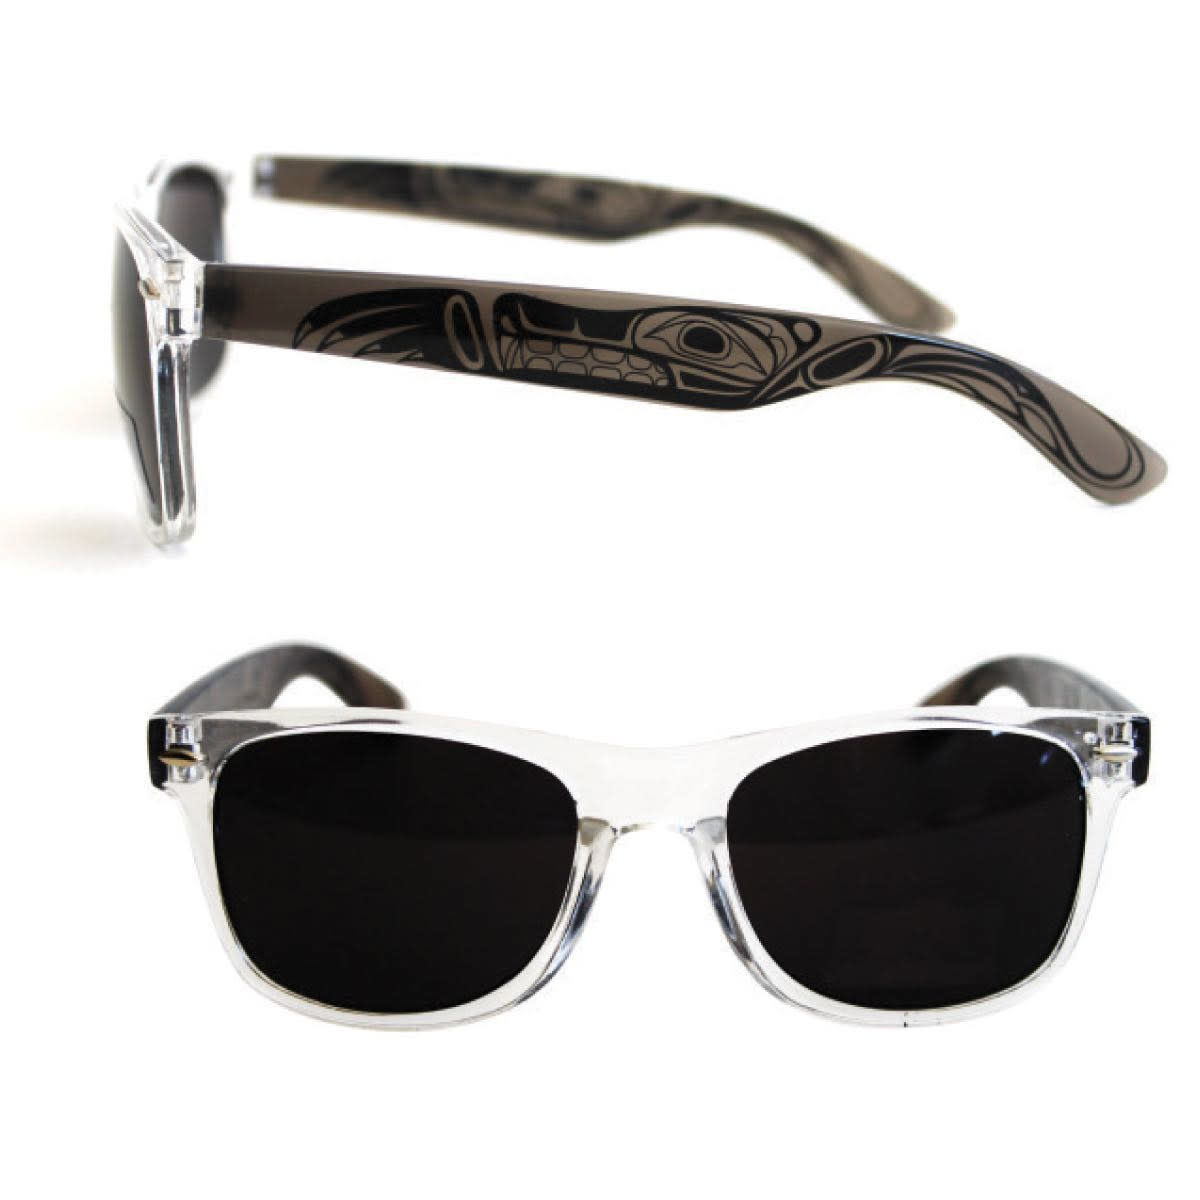 Polarized Sunglasses with Clear Fronts & Designed clear colored sides.-1